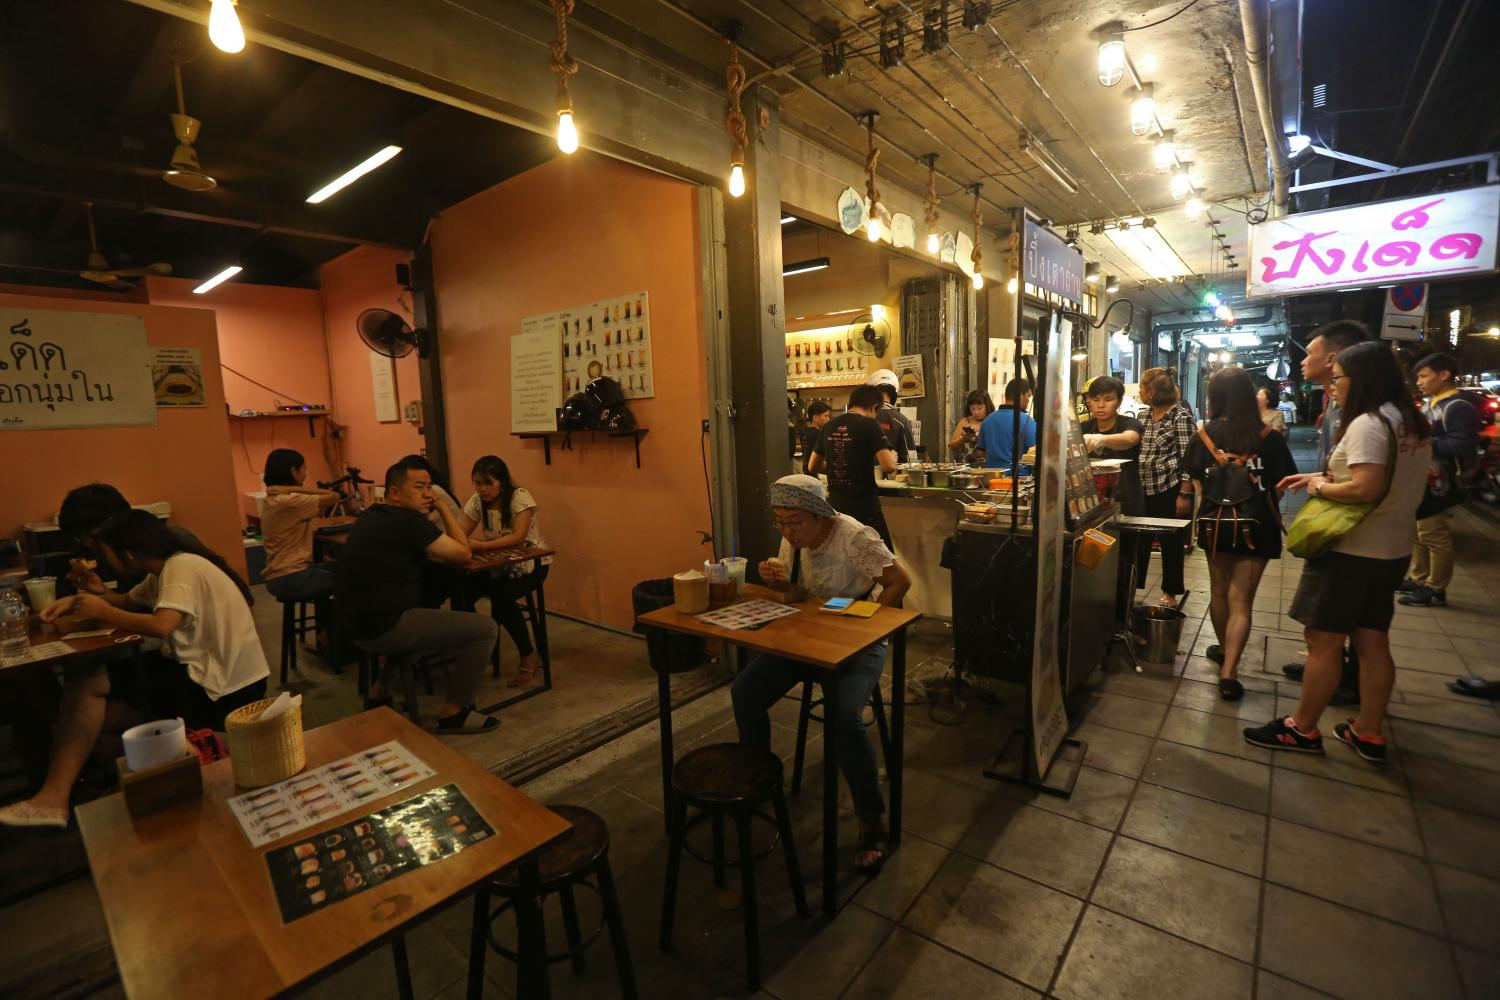 Customers sit at eateries on Bangkok's Bantadthong Road. Thailand is undergoing stagflation, with its economy suffering both a slowdown and high inflation at the same time, says economist Chartchai Parasuk.